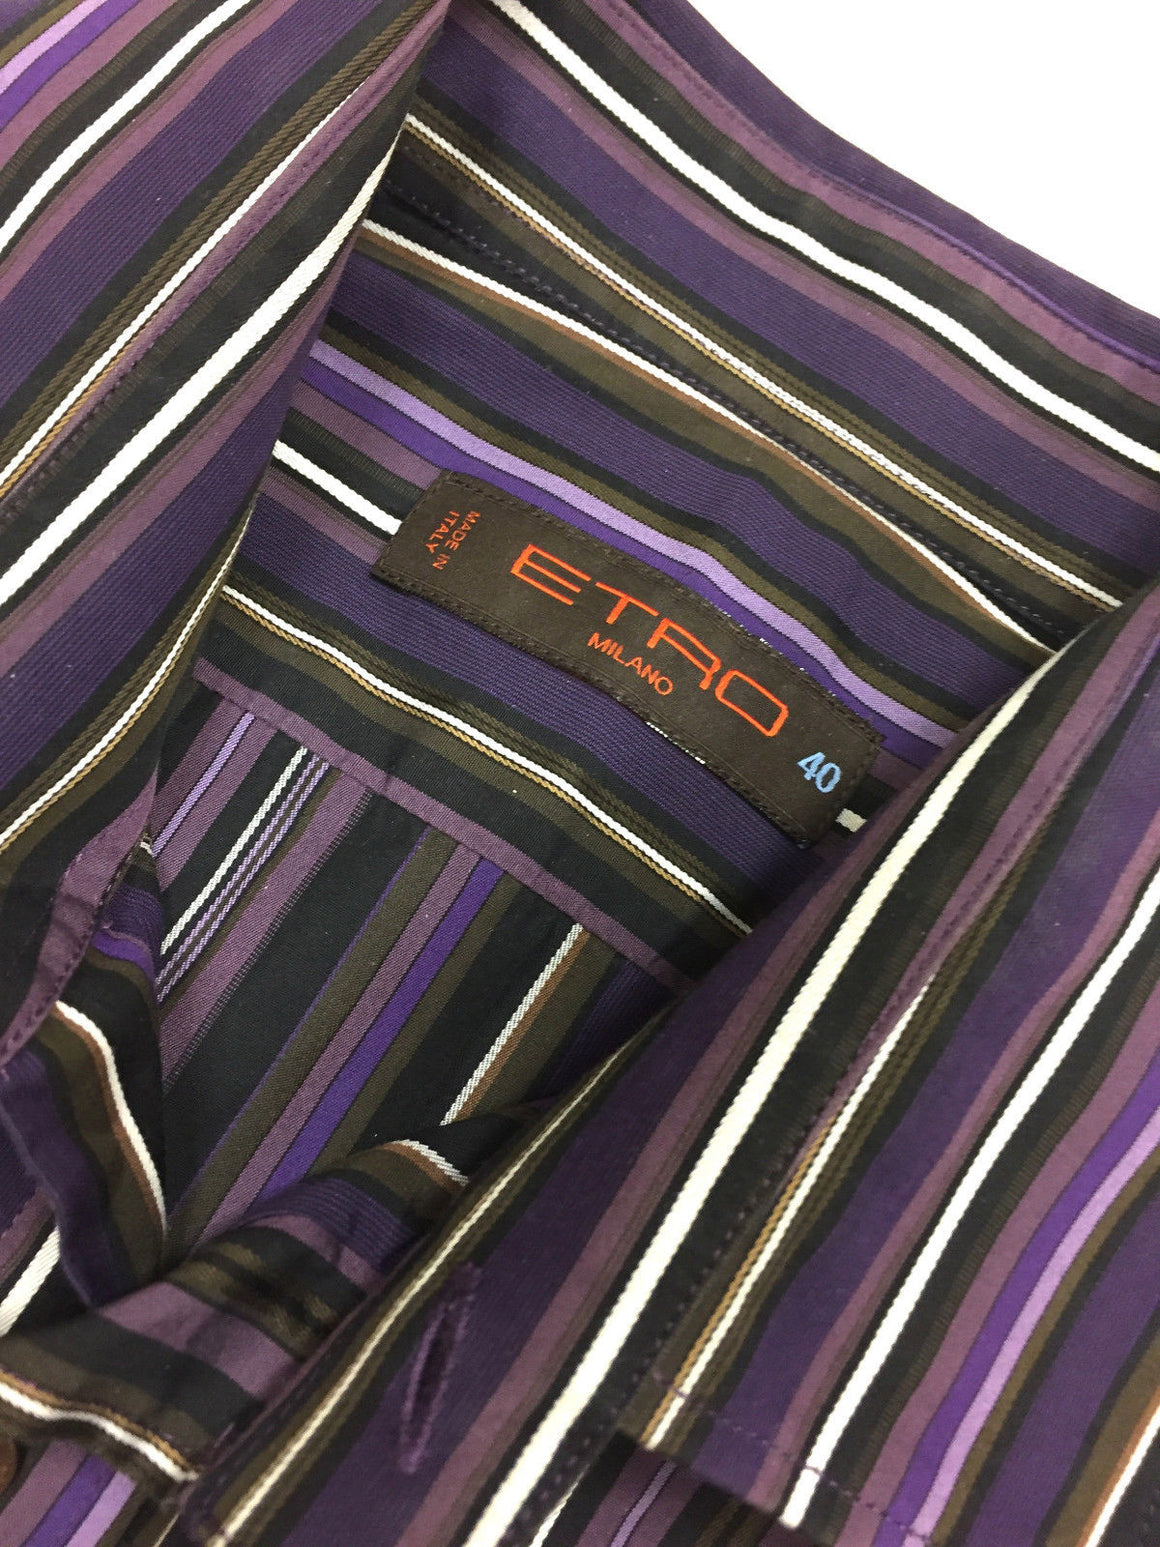 bisbiz.com ETRO - MILANO Purple/Multi-color Multi-striped Cotton Men's Dress Shirt Size: EU40 / M - Bis Luxury Resale